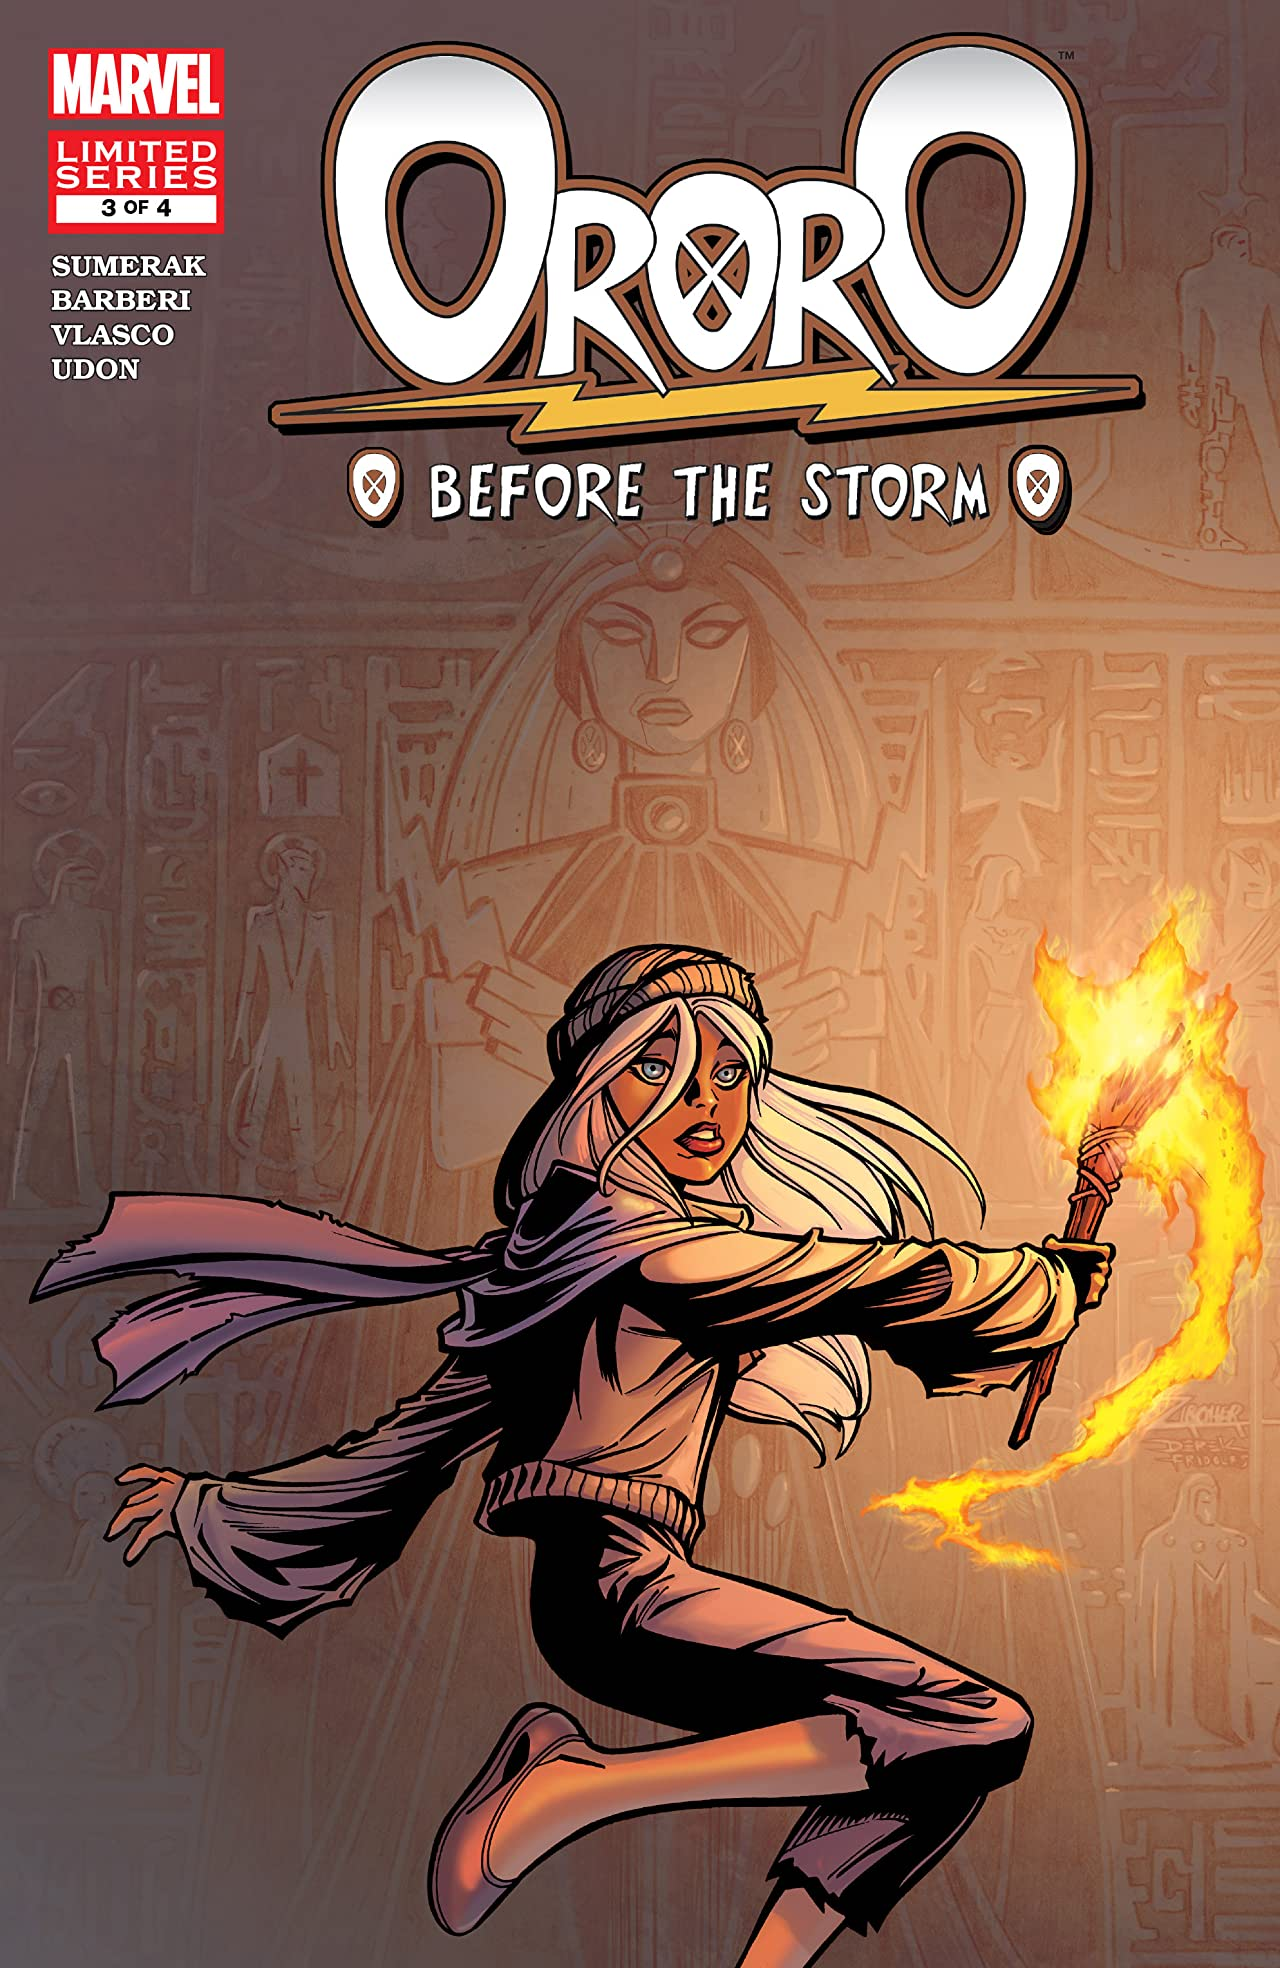 Ororo: Before The Storm (2005) #3 (of 4)